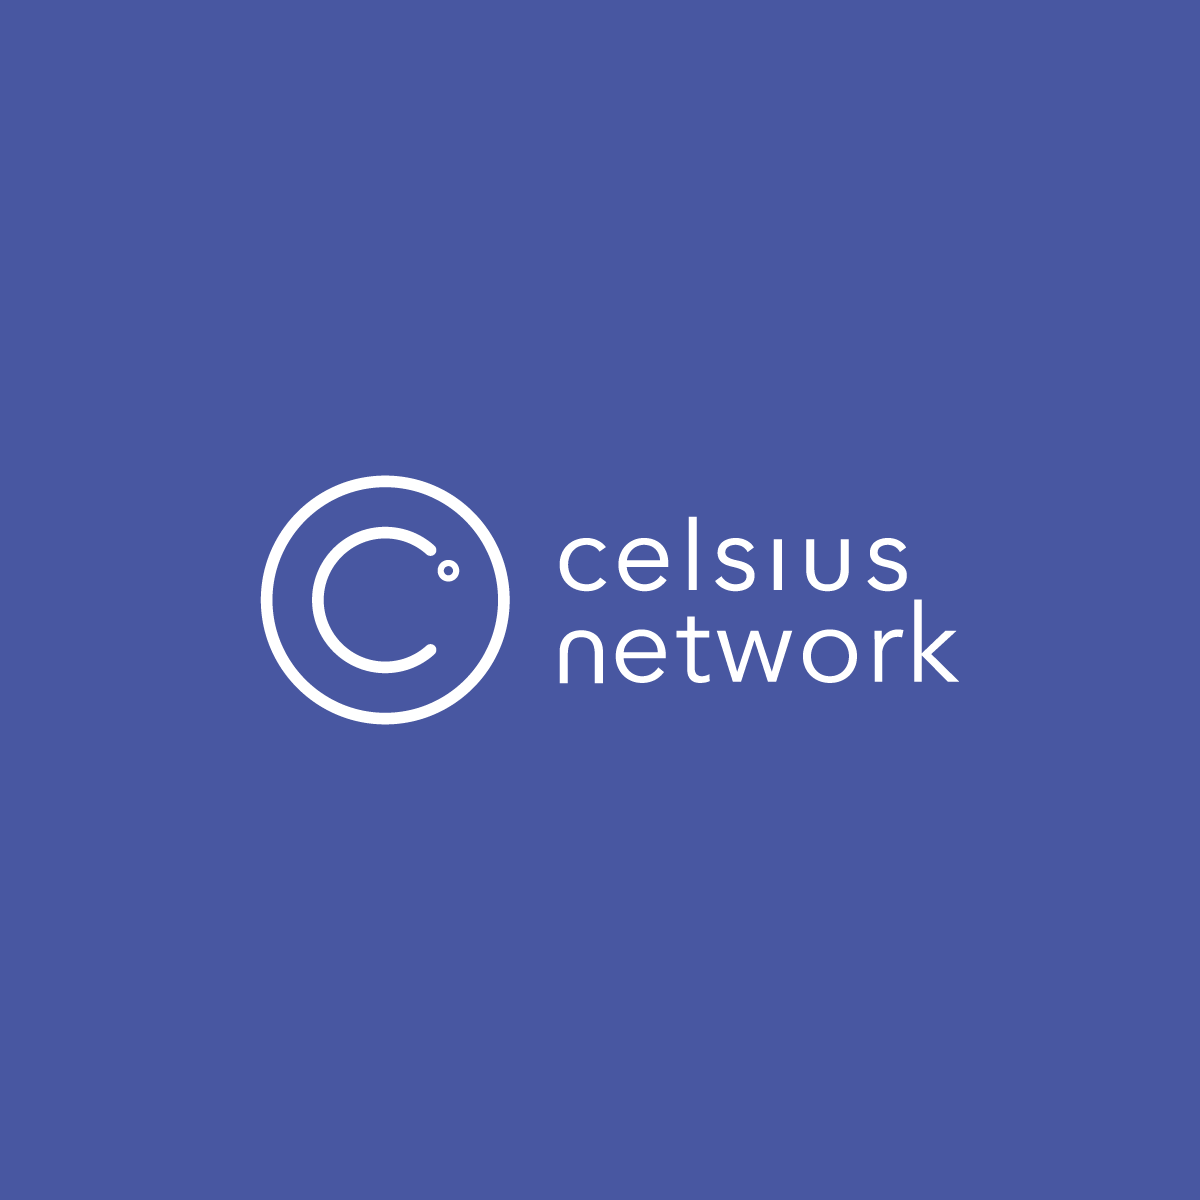 celsius-network-logo